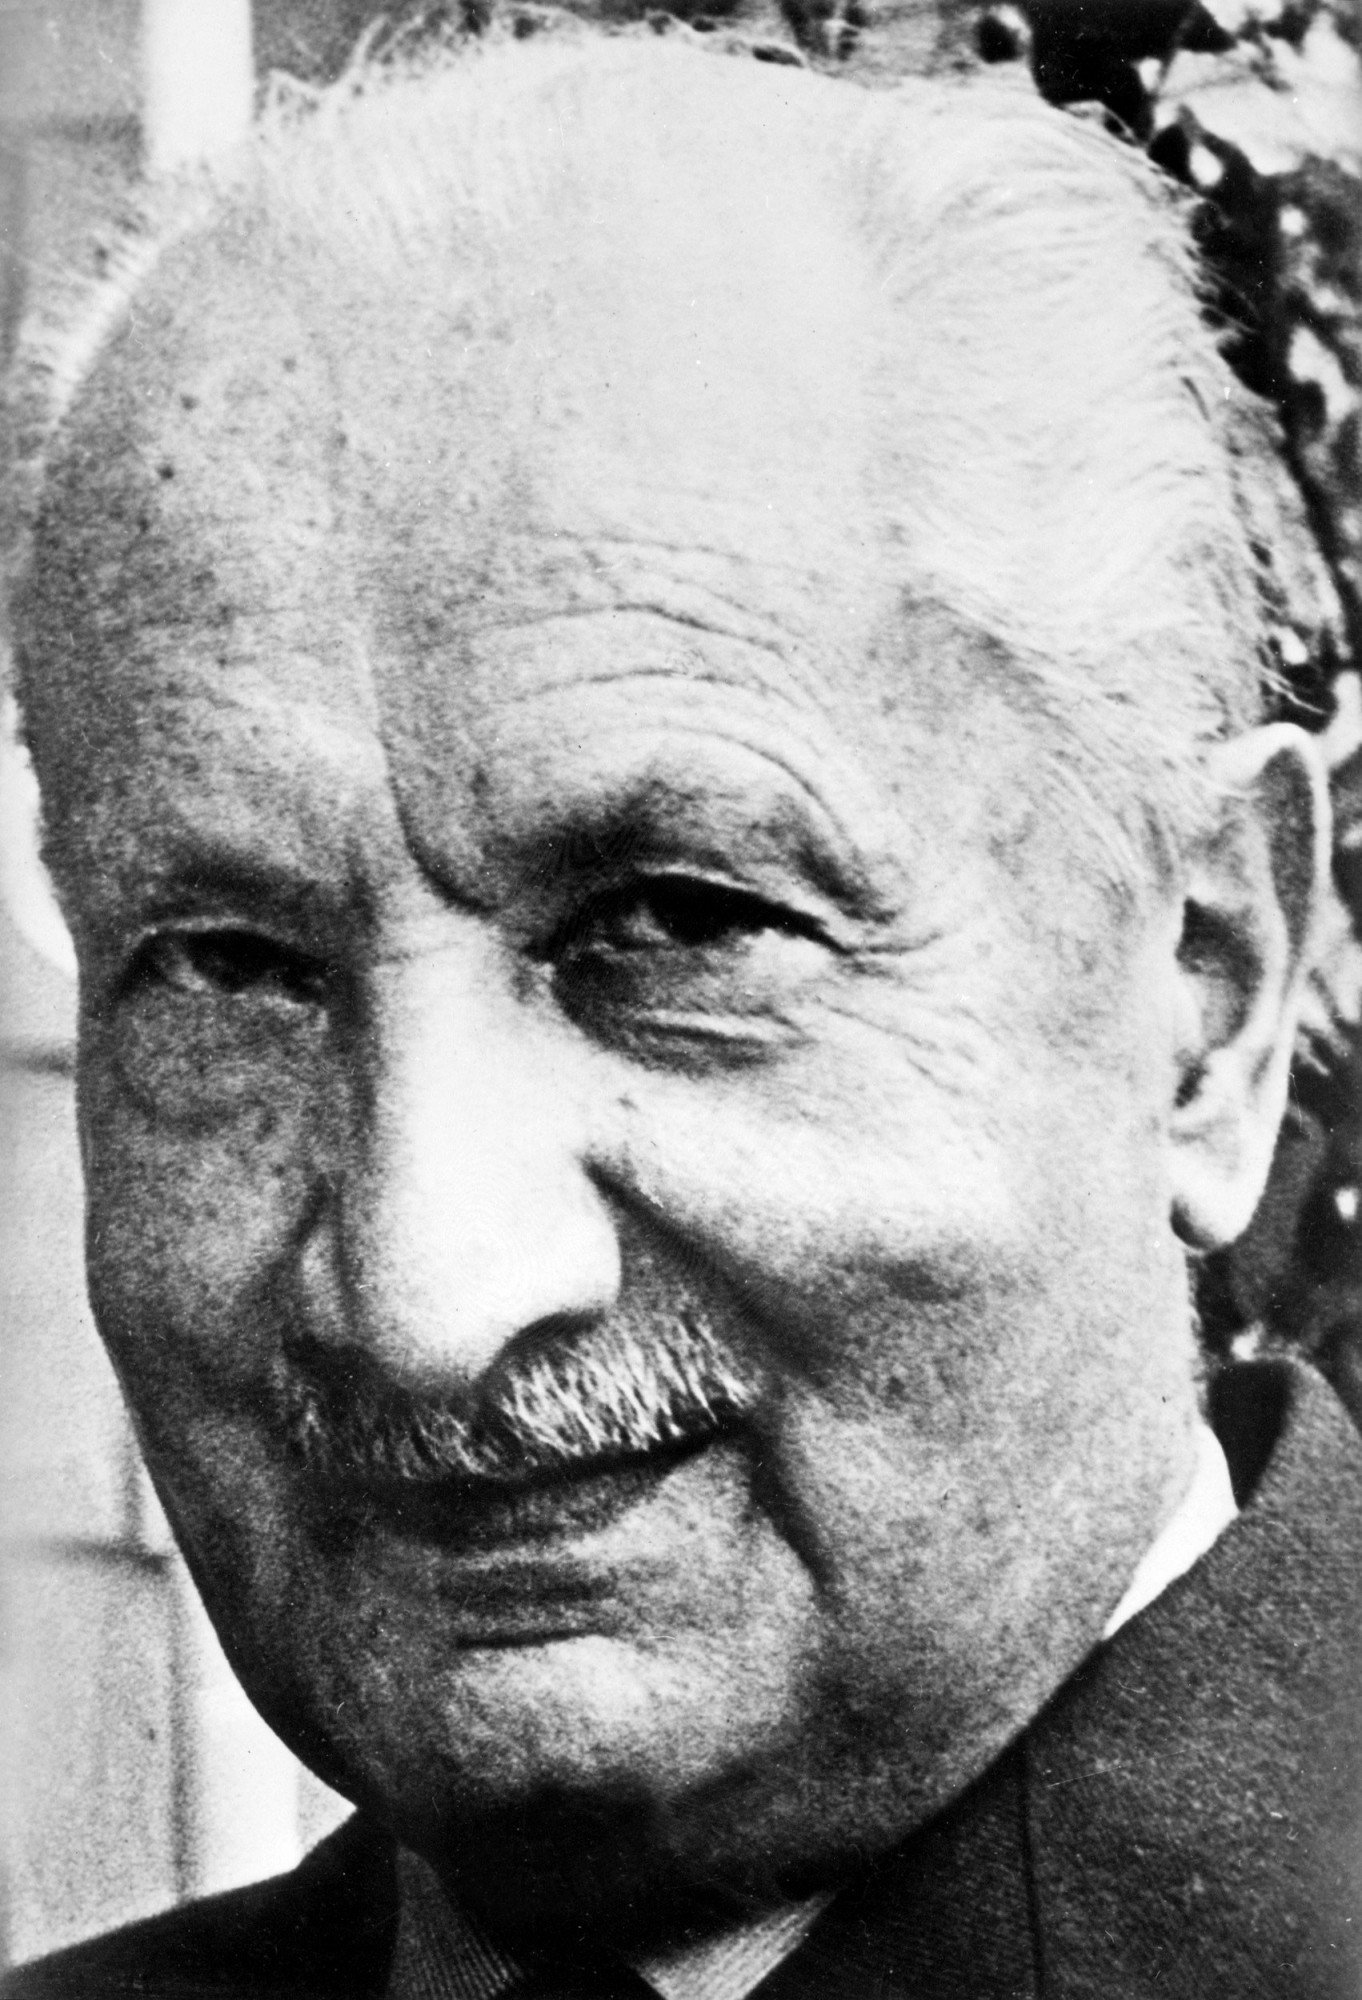 UNDATED: An undated picture shows famous German philosopher Martin Heidegger (1889-1976). (Photo by AFP/Getty Images)